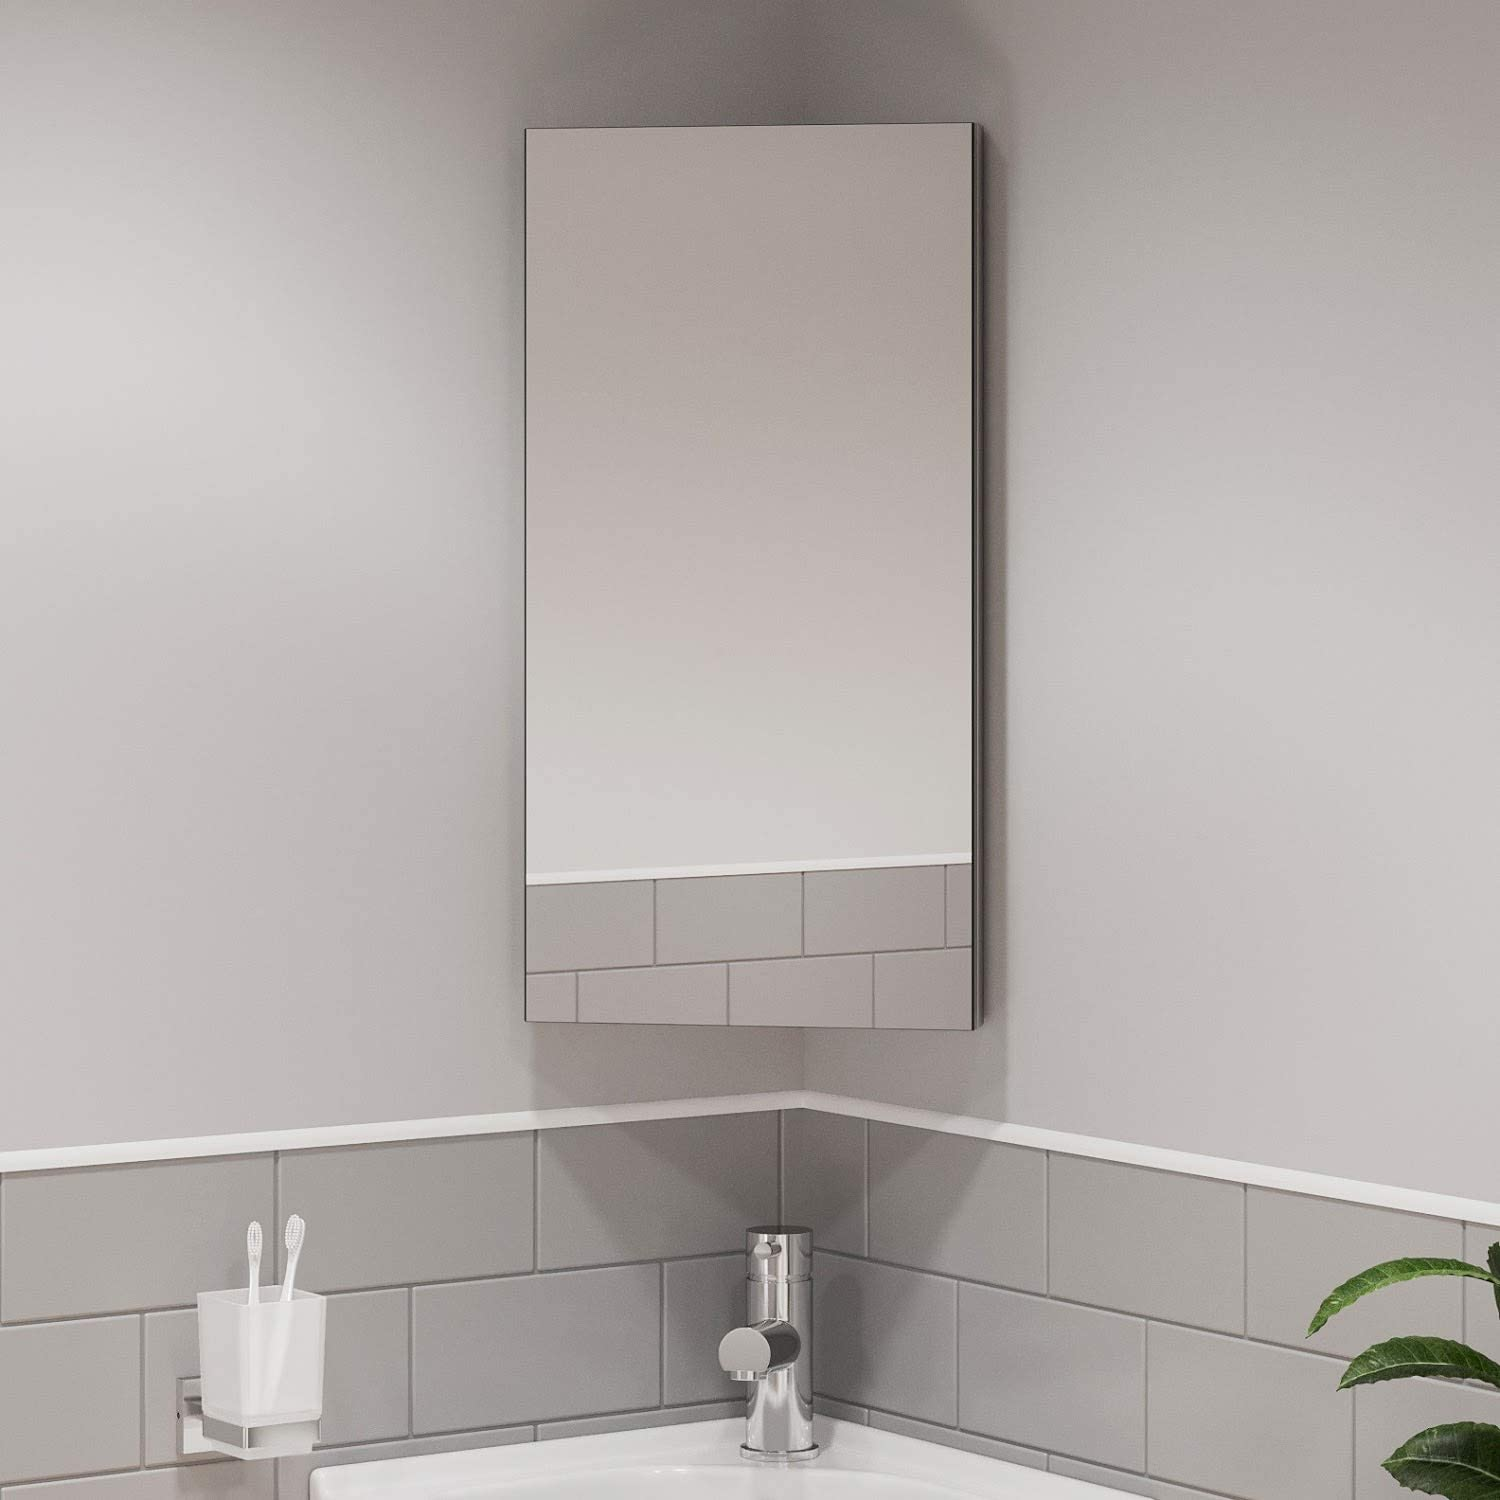 Artis Wall Mounted Single Mirror Door Corner Bathroom Cabinet Cupboard Stainless Steel Amazon Co Uk Kitchen Home